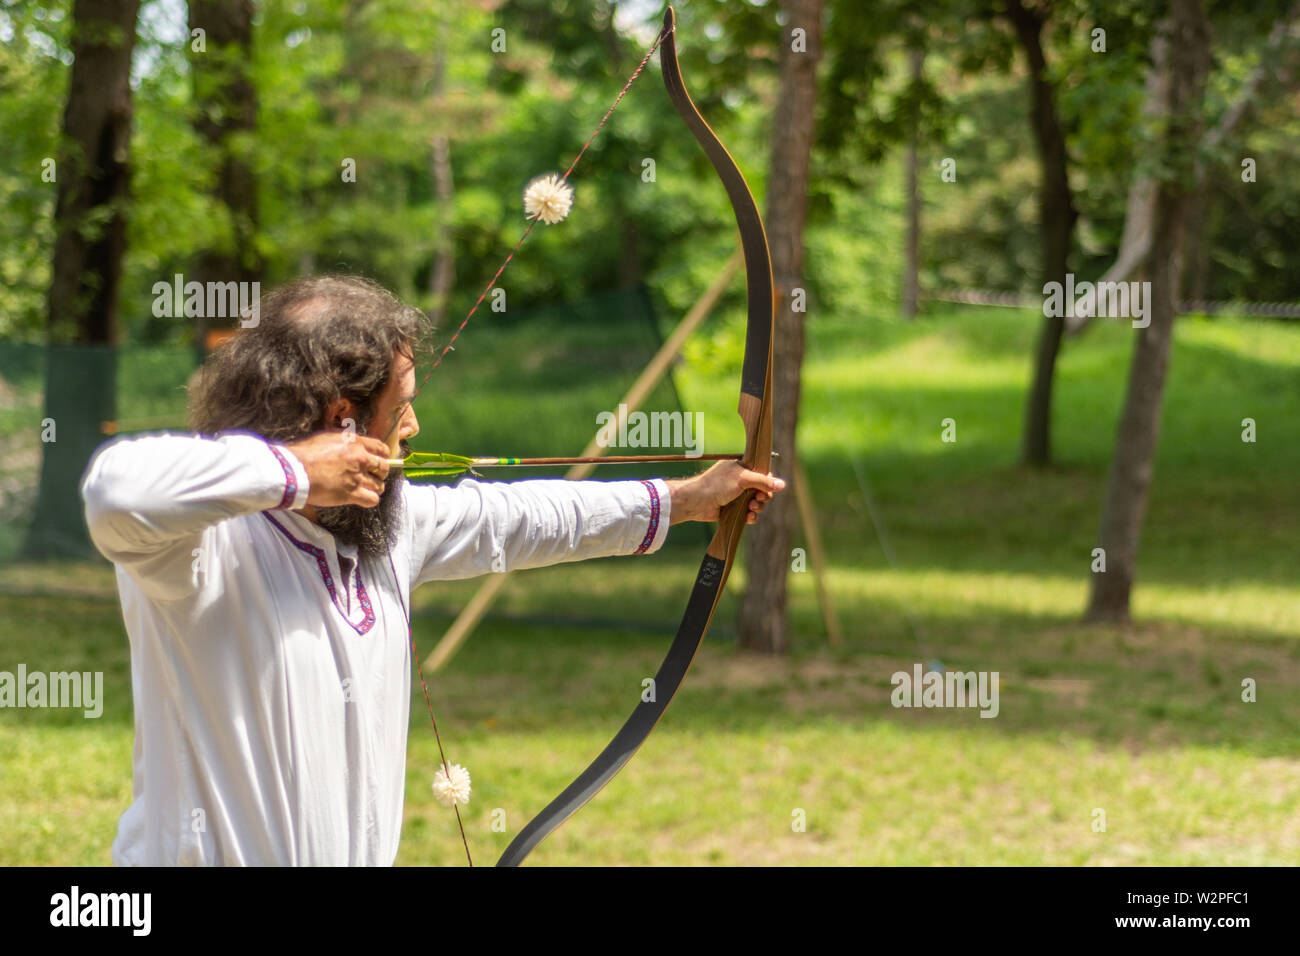 Nis, Serbia - June 16. 2019 Archer with bow shoot arrow in the forest on knight festival and tournament in a traditional suit. Bowman before shooting - Stock Image